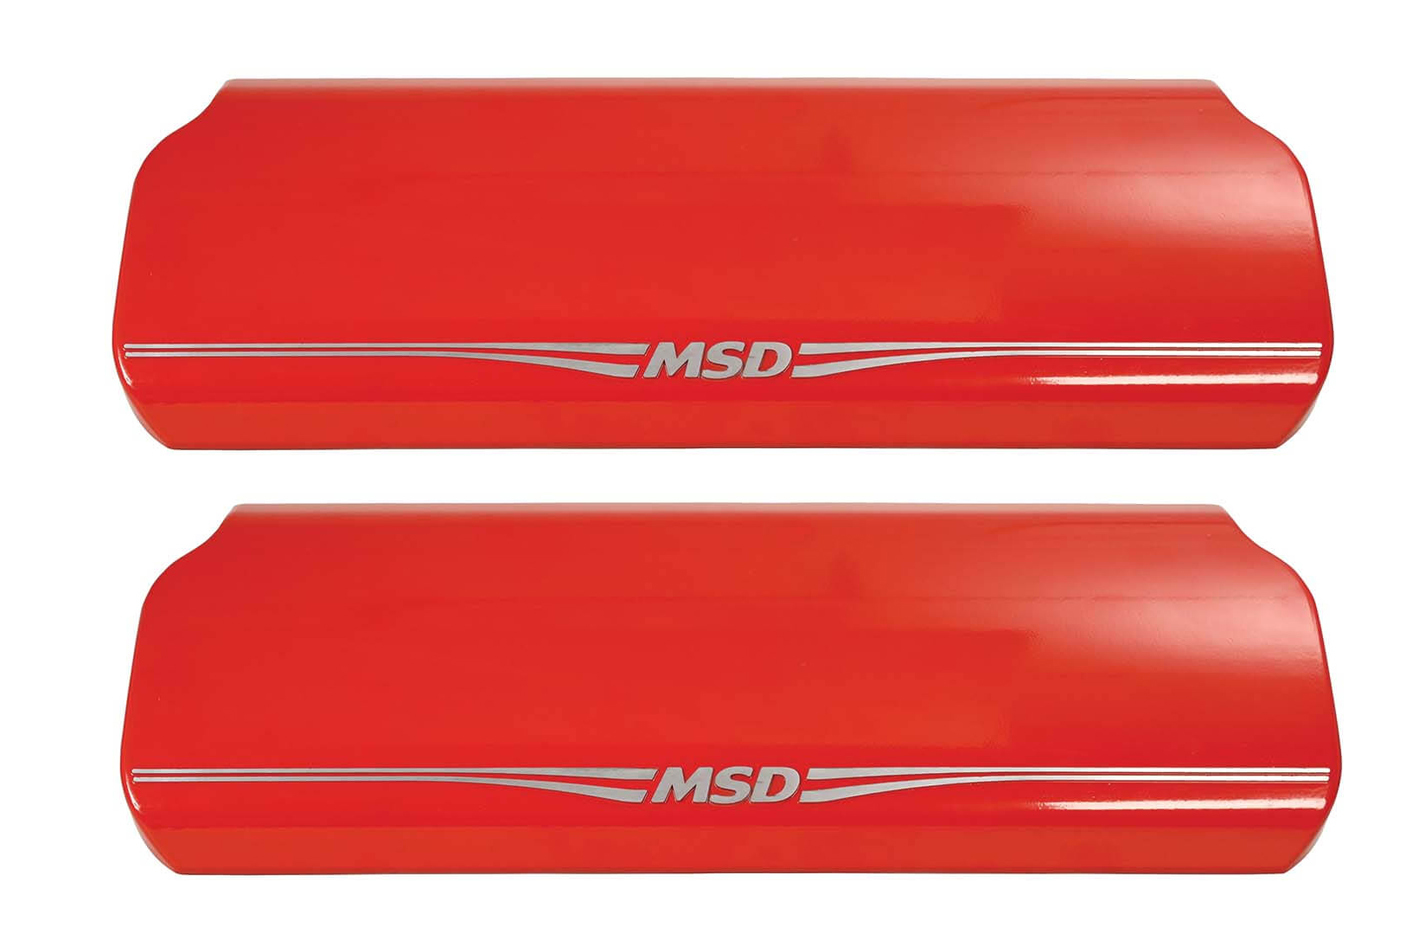 Msd Ignition Atomic LS Coil Cover Discontinued 06/23/21 PD